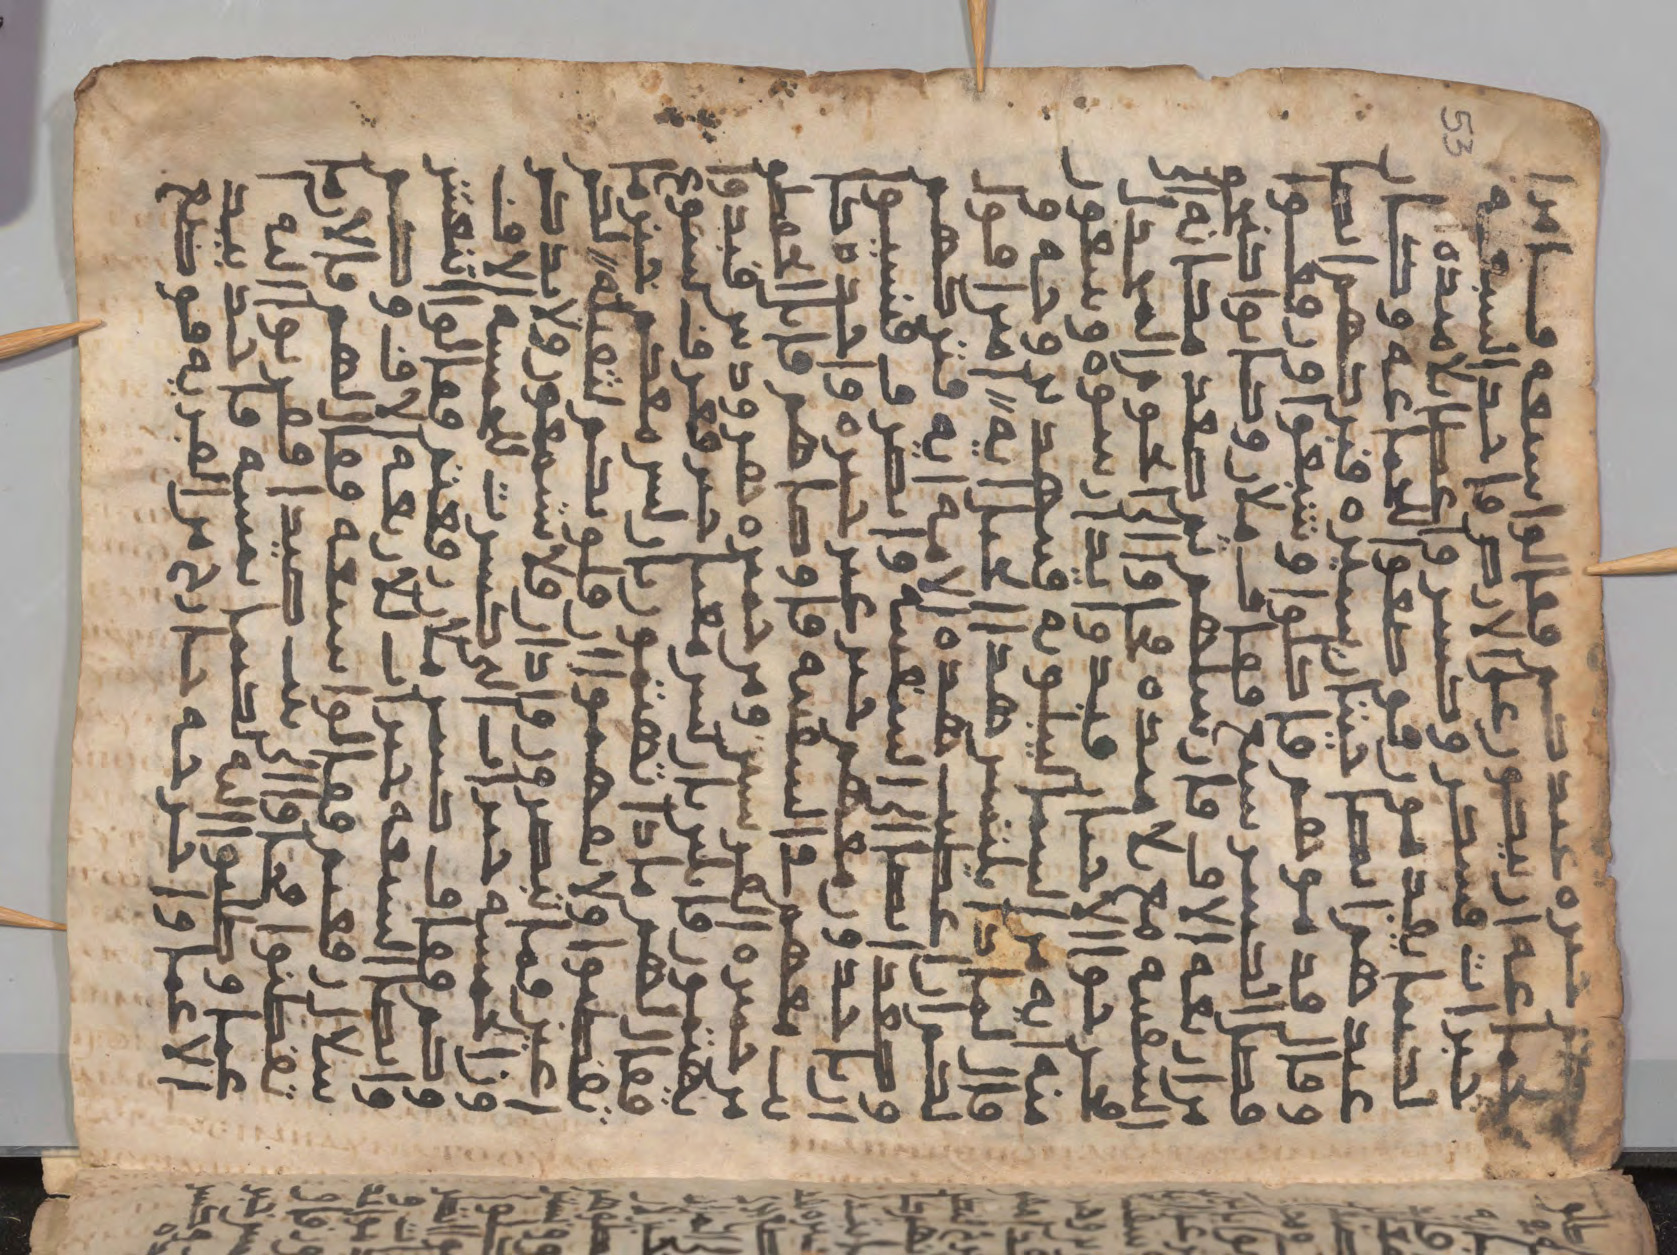 Gospels in Arabic translation, late eighth century. The oldest surviving copy of the Gospels in Arabic translation.